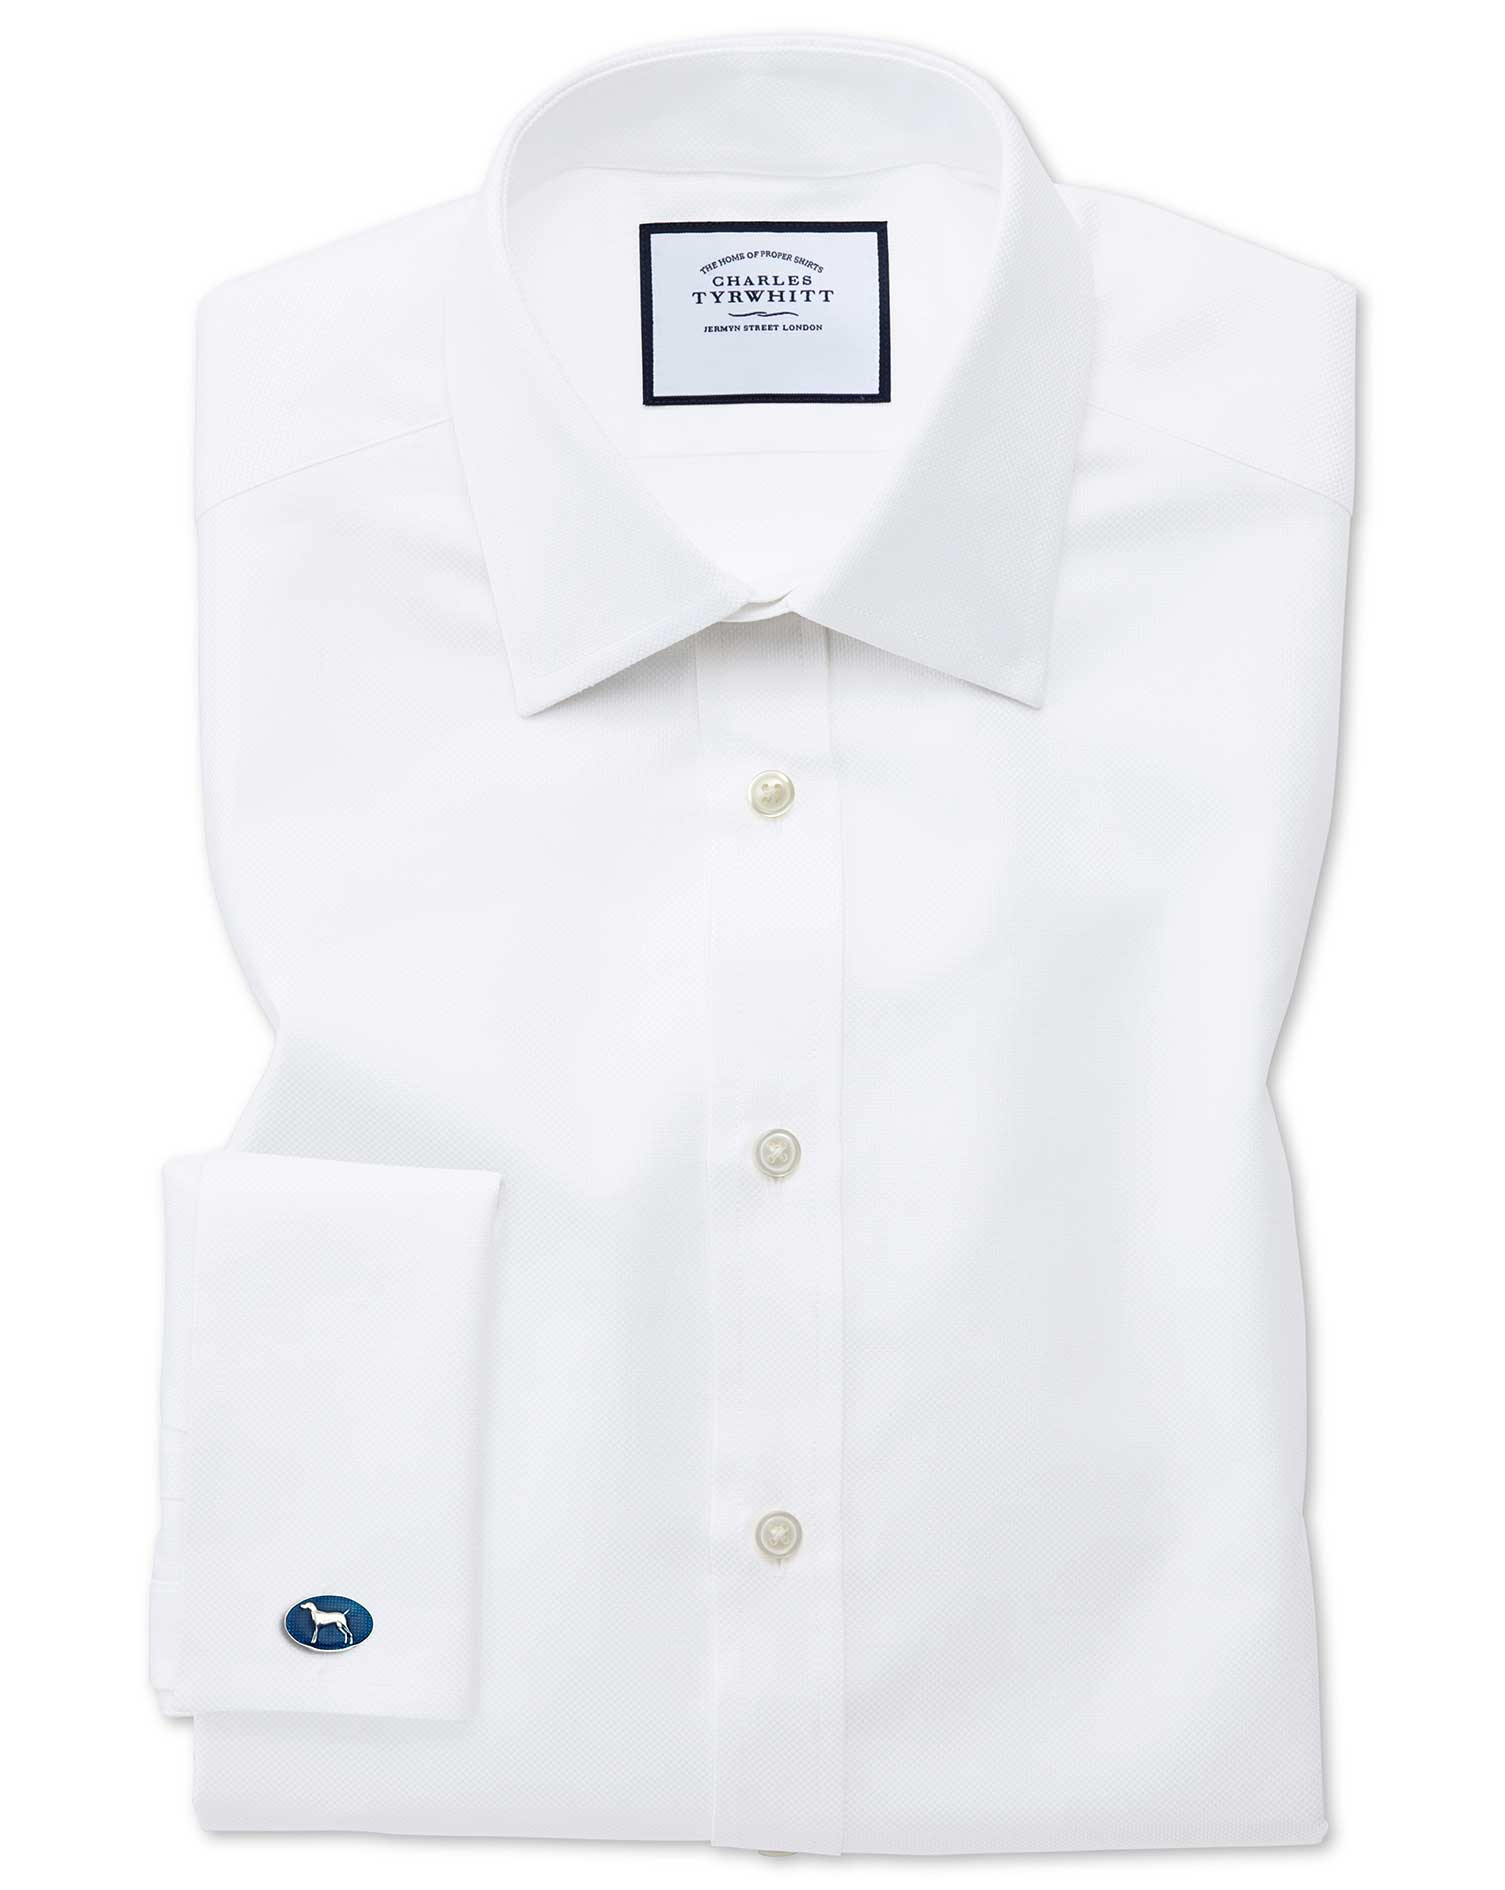 Slim Fit Egyptian Cotton Royal Oxford White Formal Shirt Single Cuff Size 17/37 by Charles Tyrwhitt